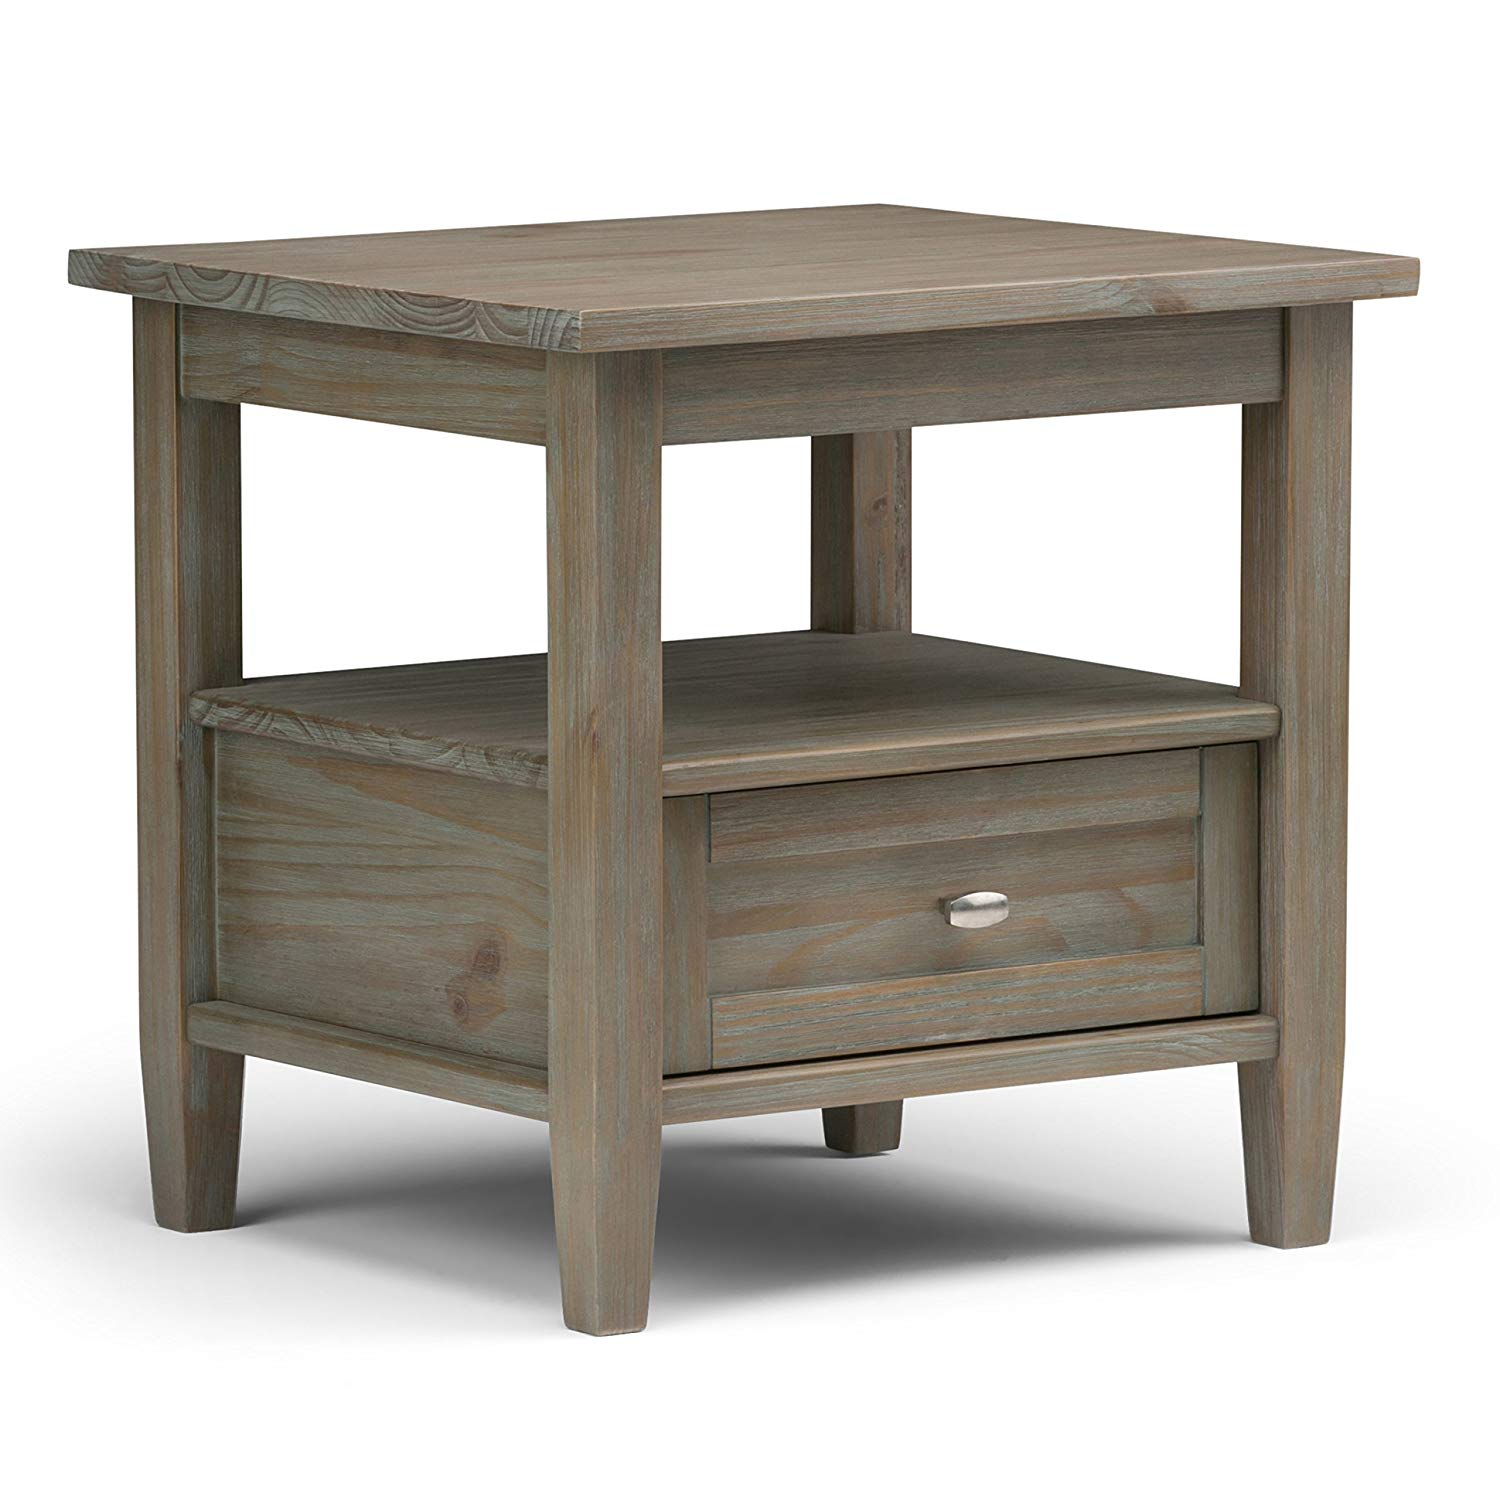 simpli home warm shaker solid wood inch grey distressed end tables wide rustic side table kitchen dining dog nightstand low square coffee beside sofa bathroom shelves demi lune